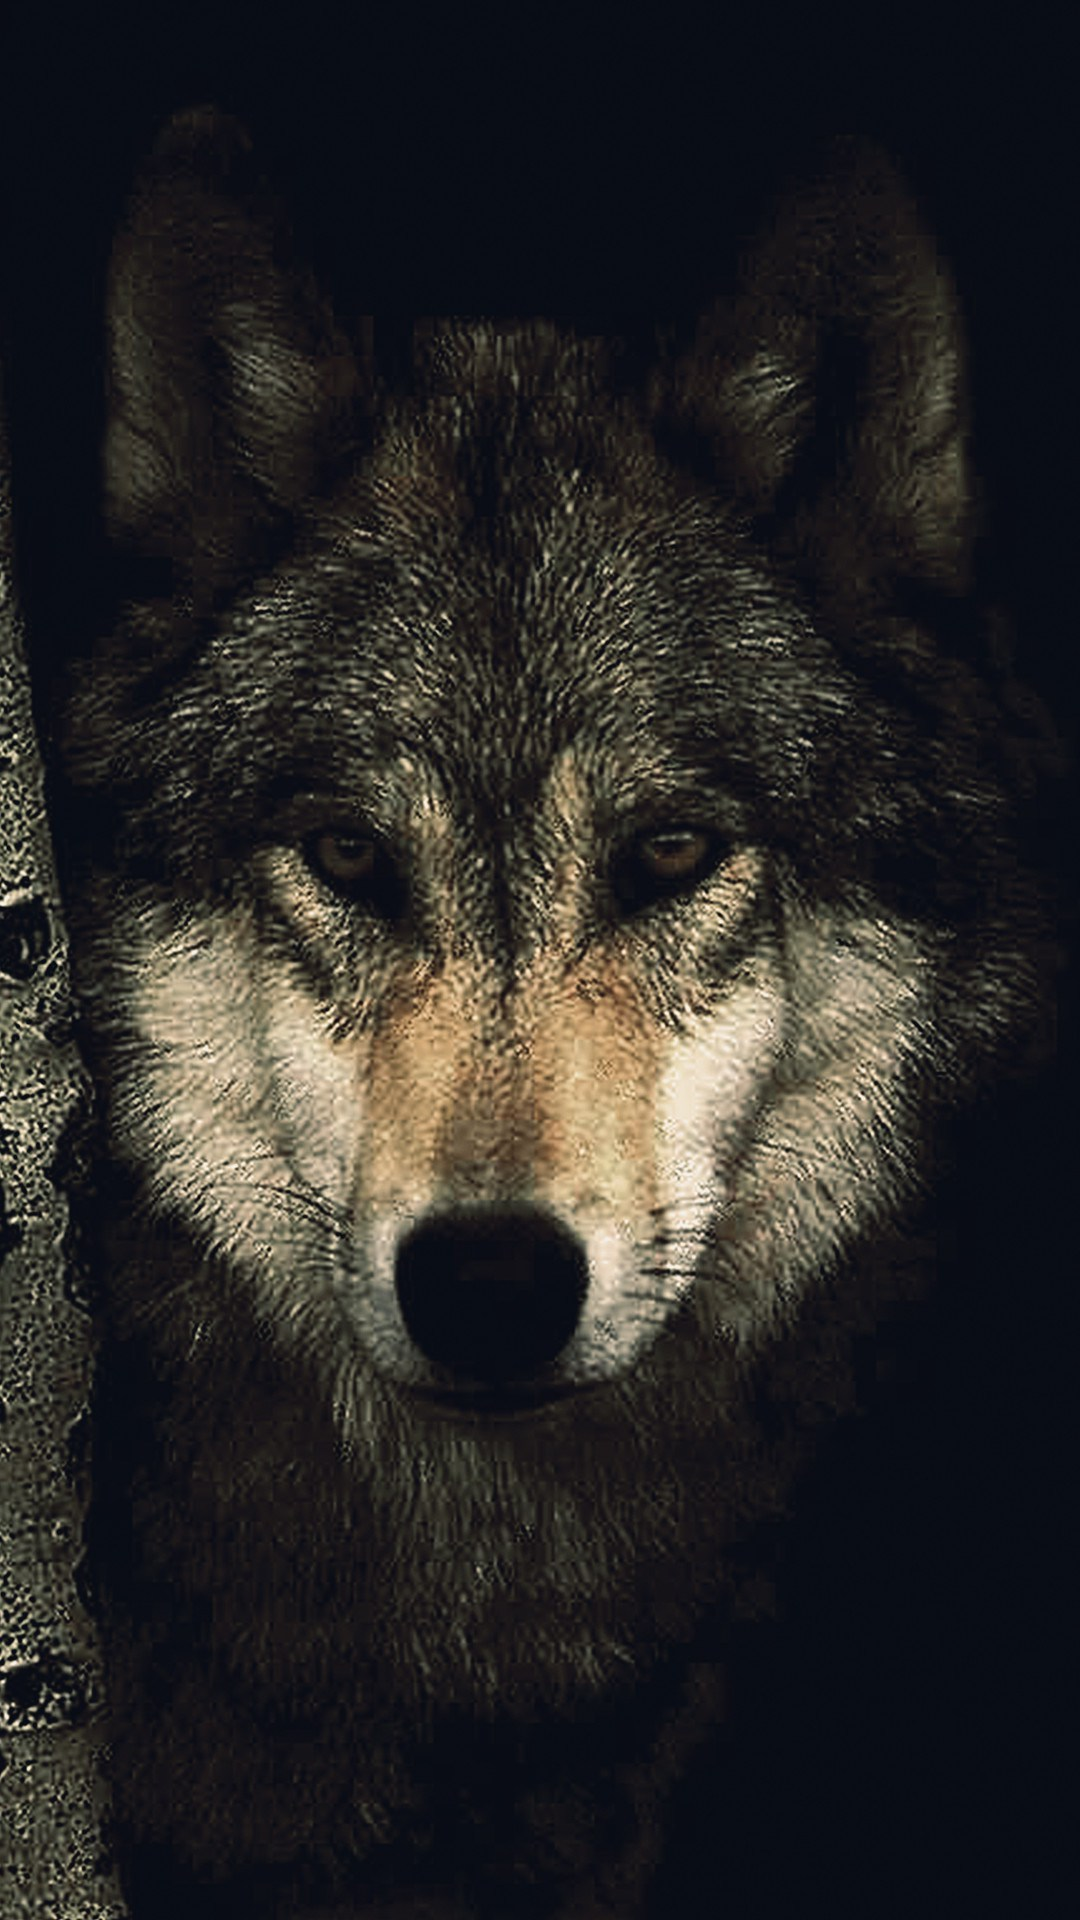 Free Download Download Lone Wolf Wallpaper 60 Wallpaper For Your Screen 1080x1920 For Your Desktop Mobile Tablet Explore 54 Wallpaper Of Wolf Wolf Wallpapers And Screensavers Wolf Images Free